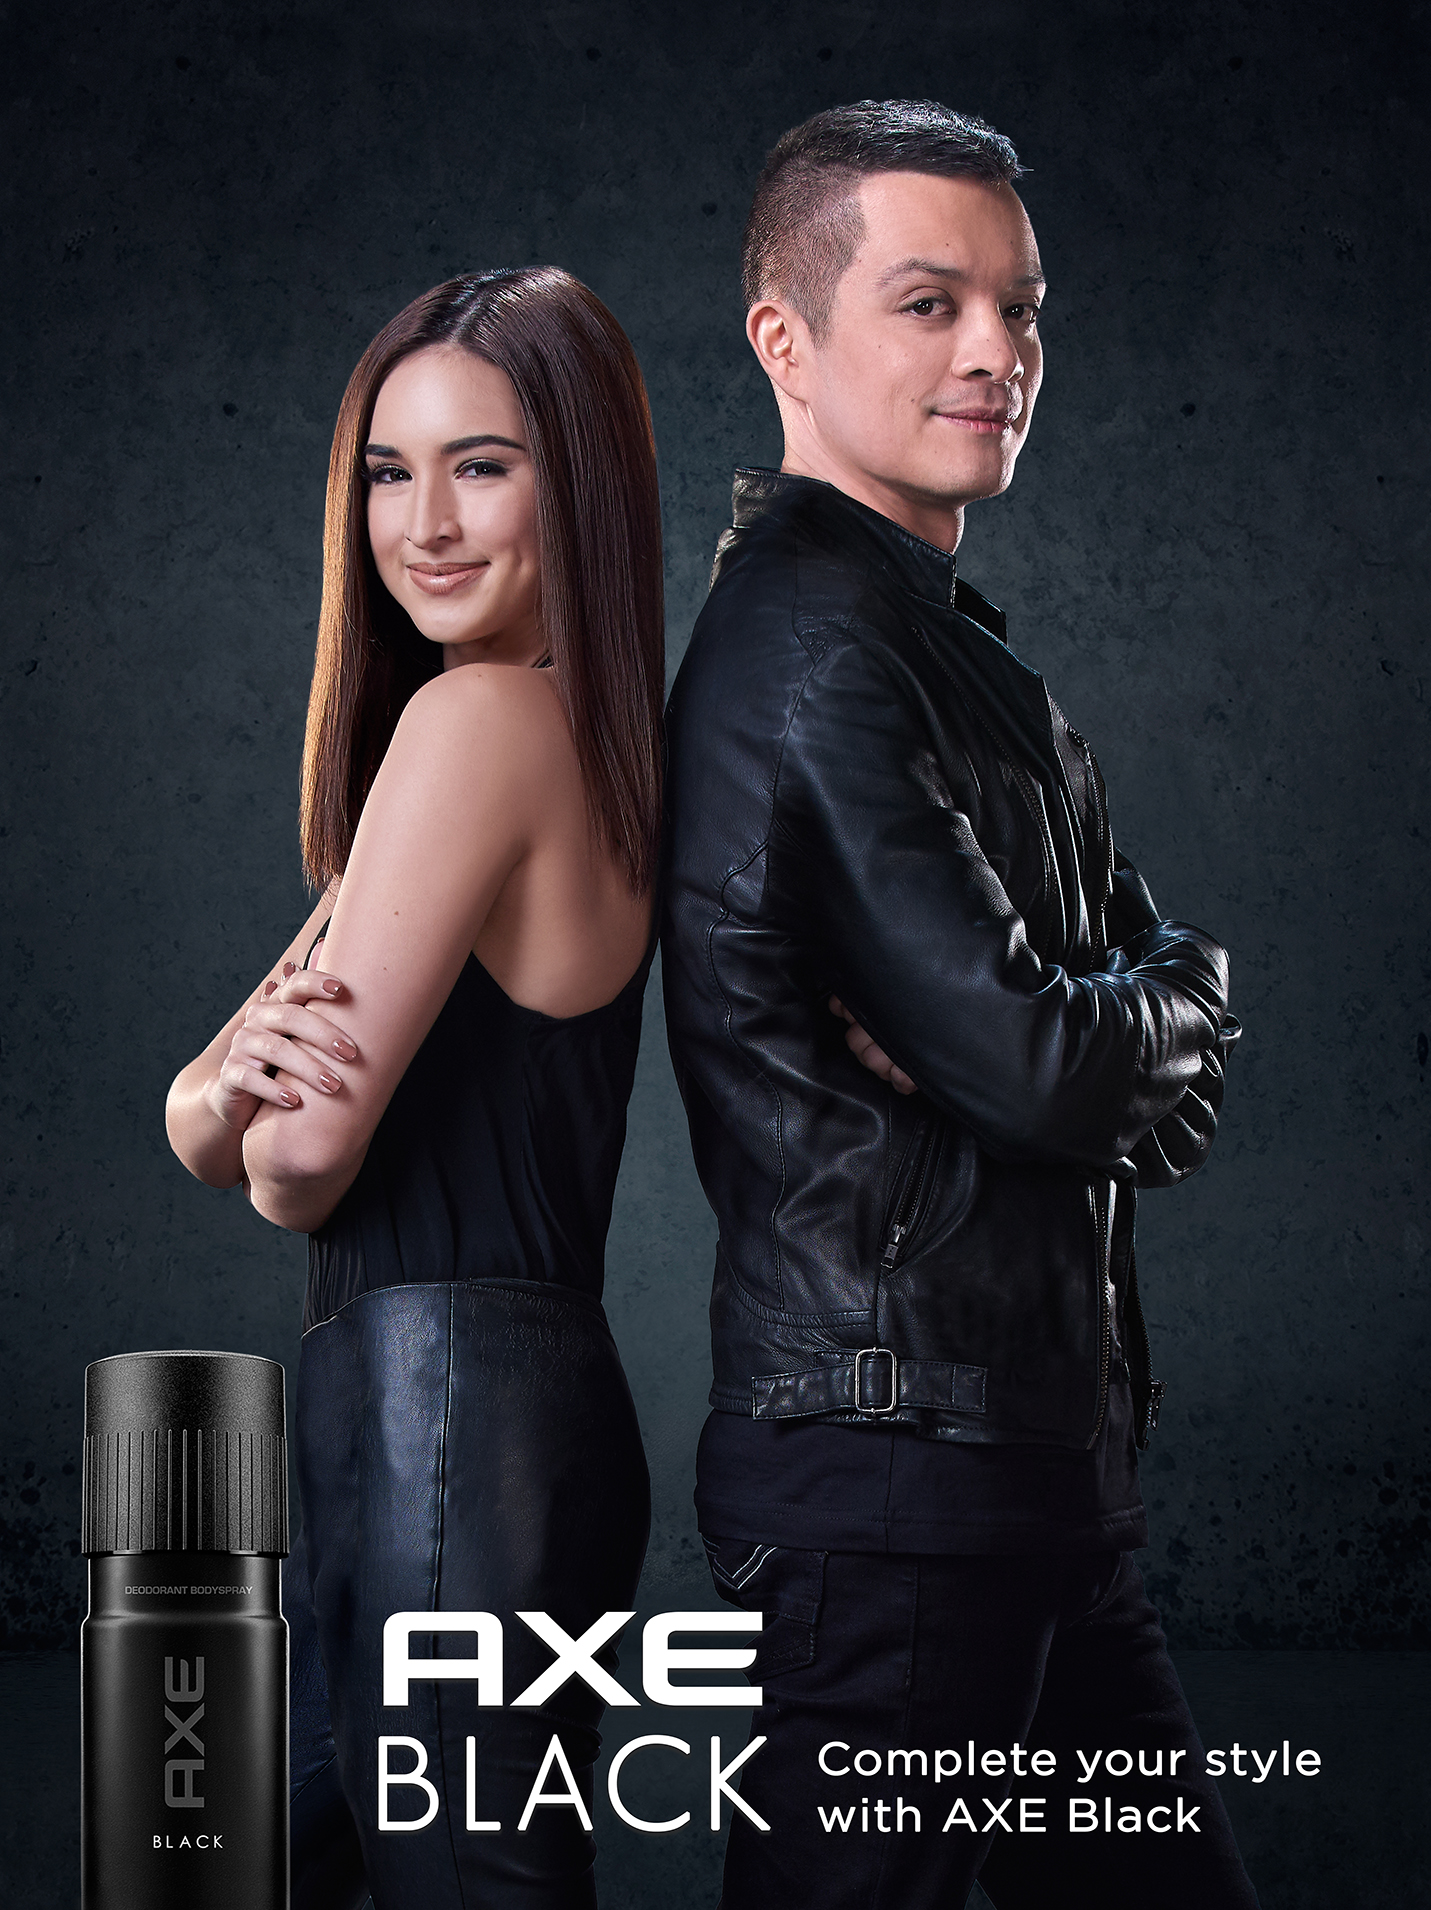 axe black pair 1200x900